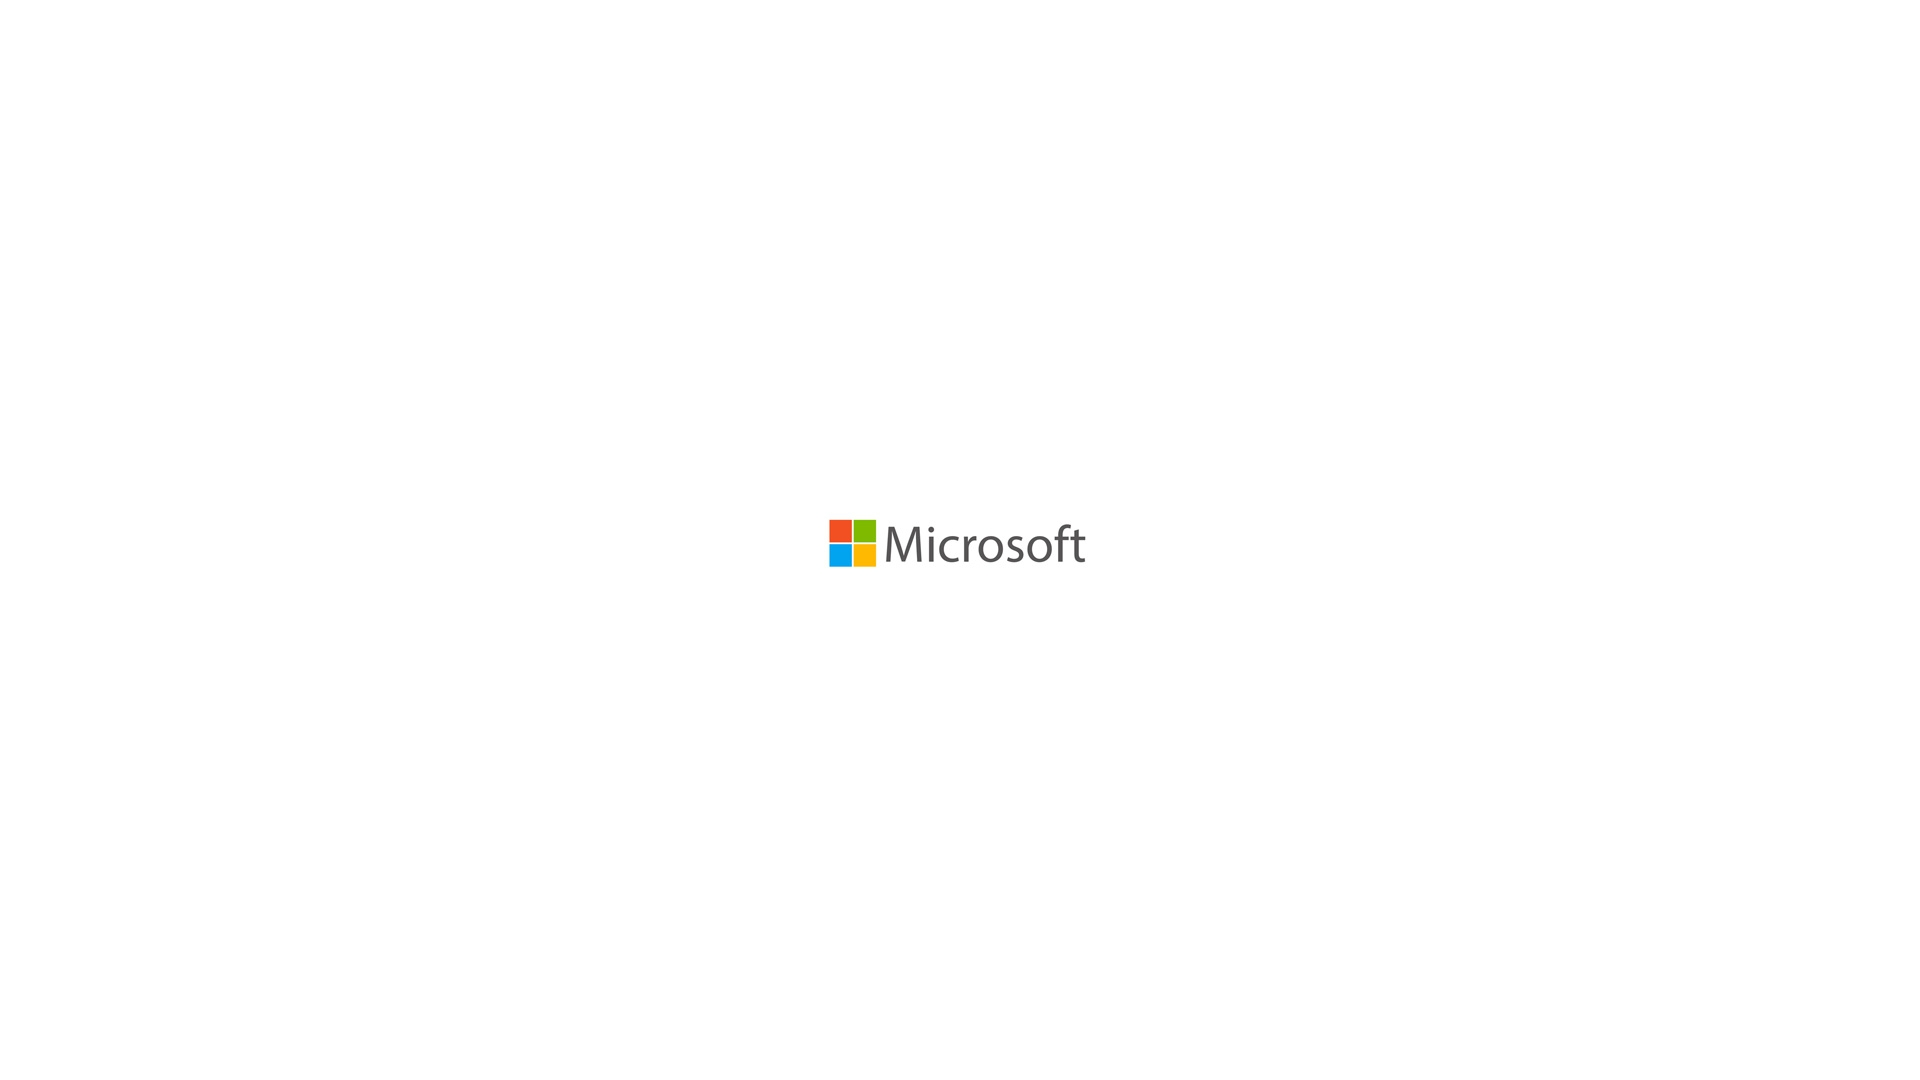 Microsoft 4k Wallpapers For Your Desktop Or Mobile Screen